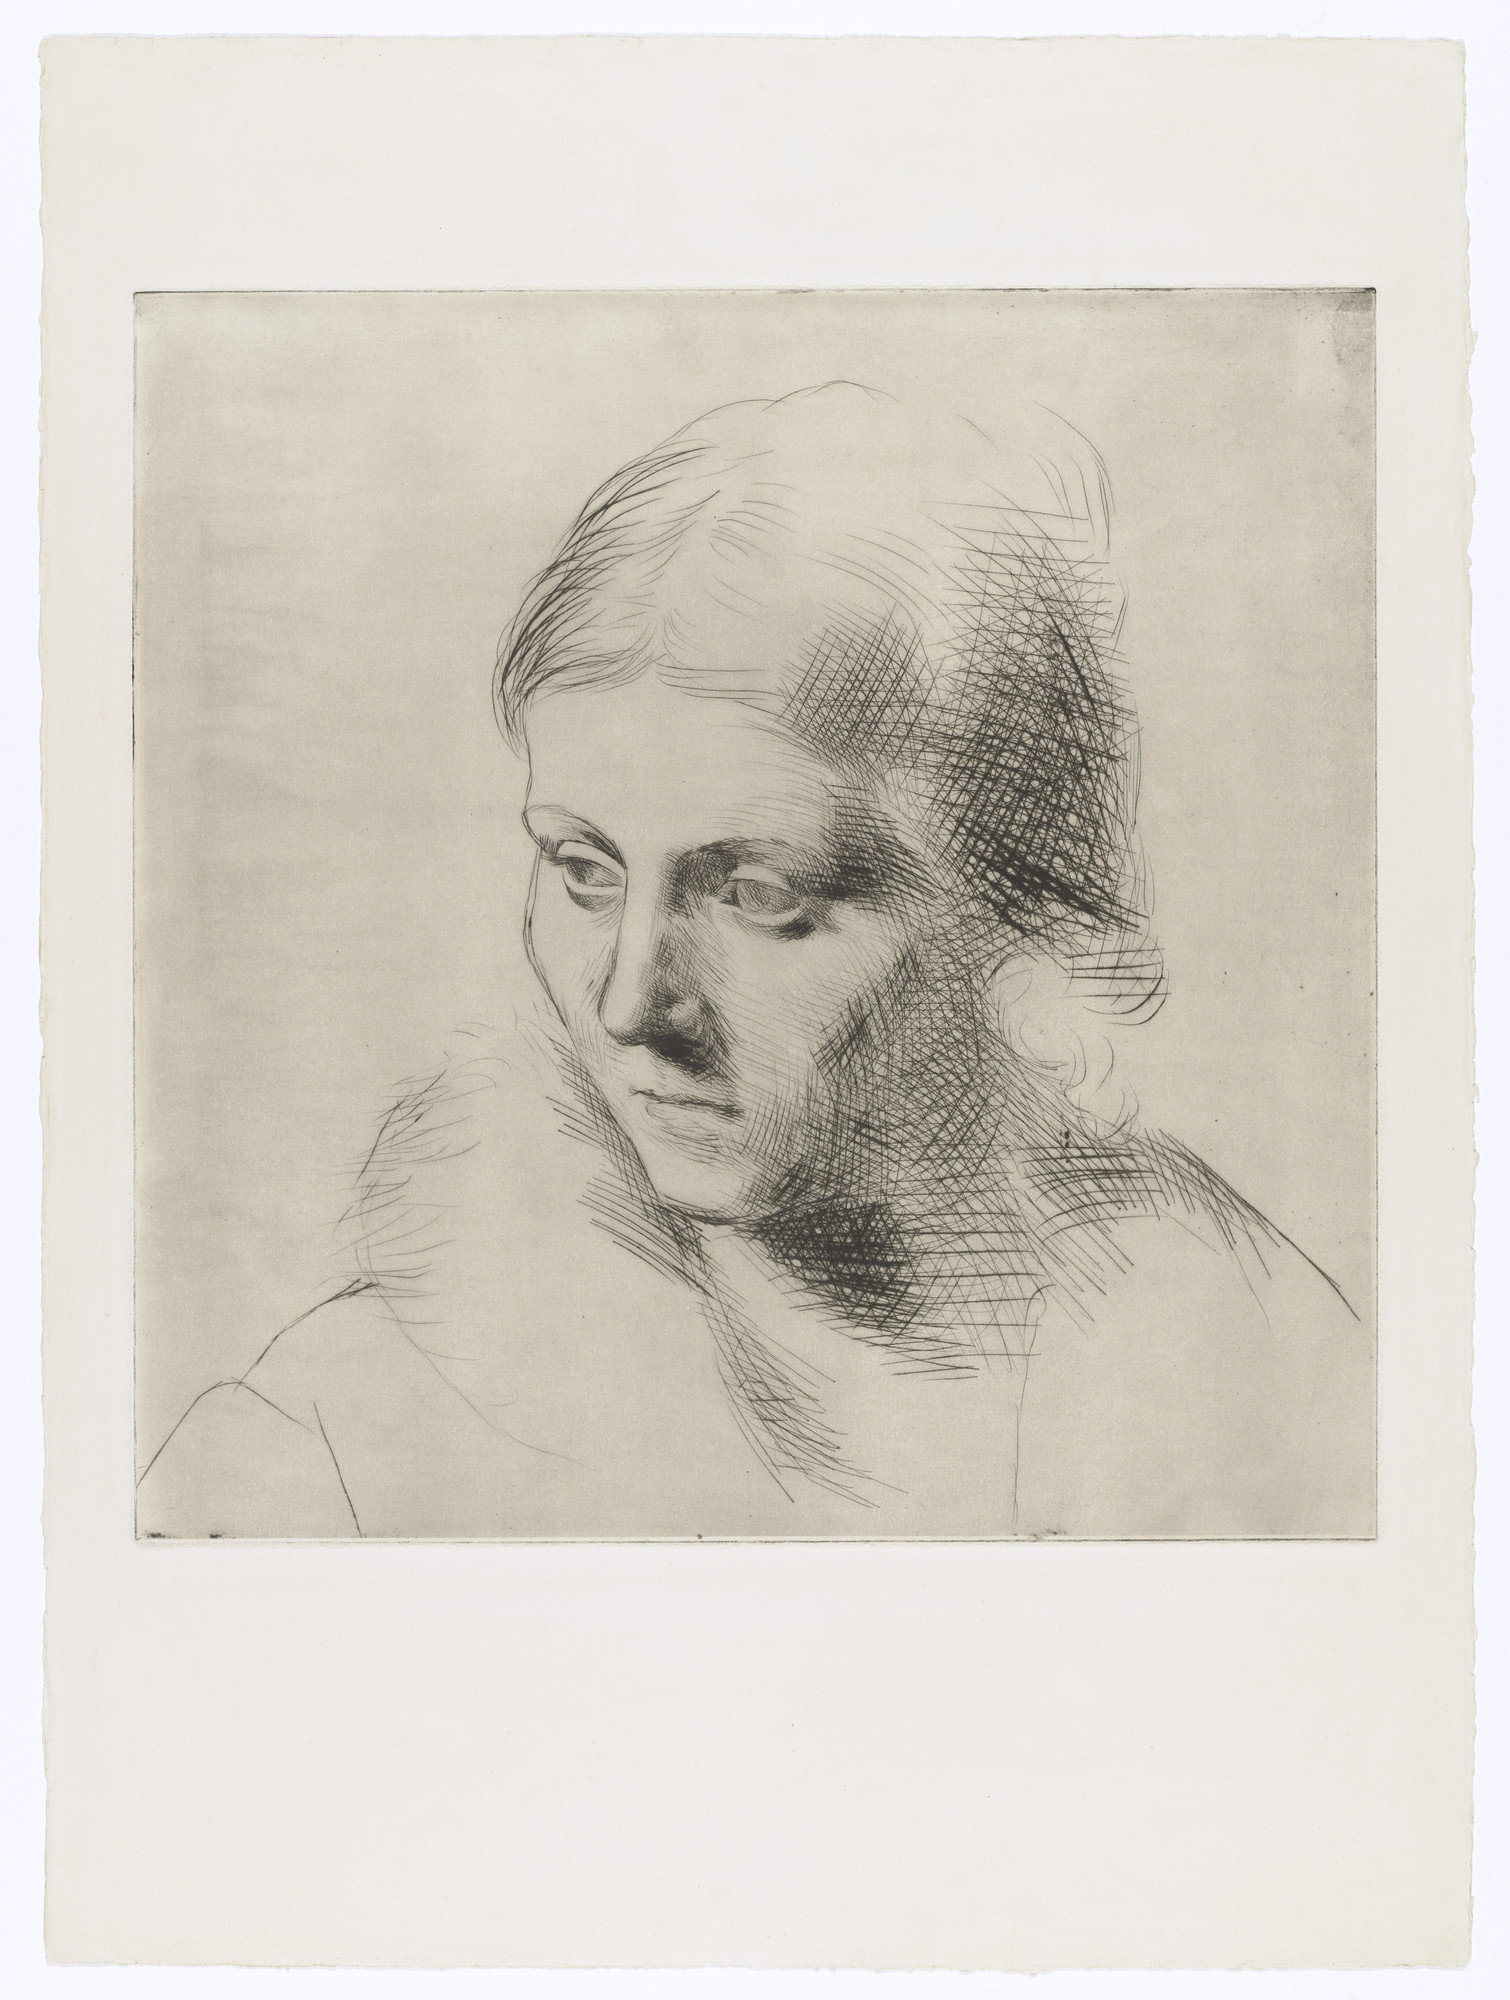 Pablo Picasso. Portrait of Olga in a Fur Collar (Portrait d'Olga au col de fourrure). 1923, printed 1955